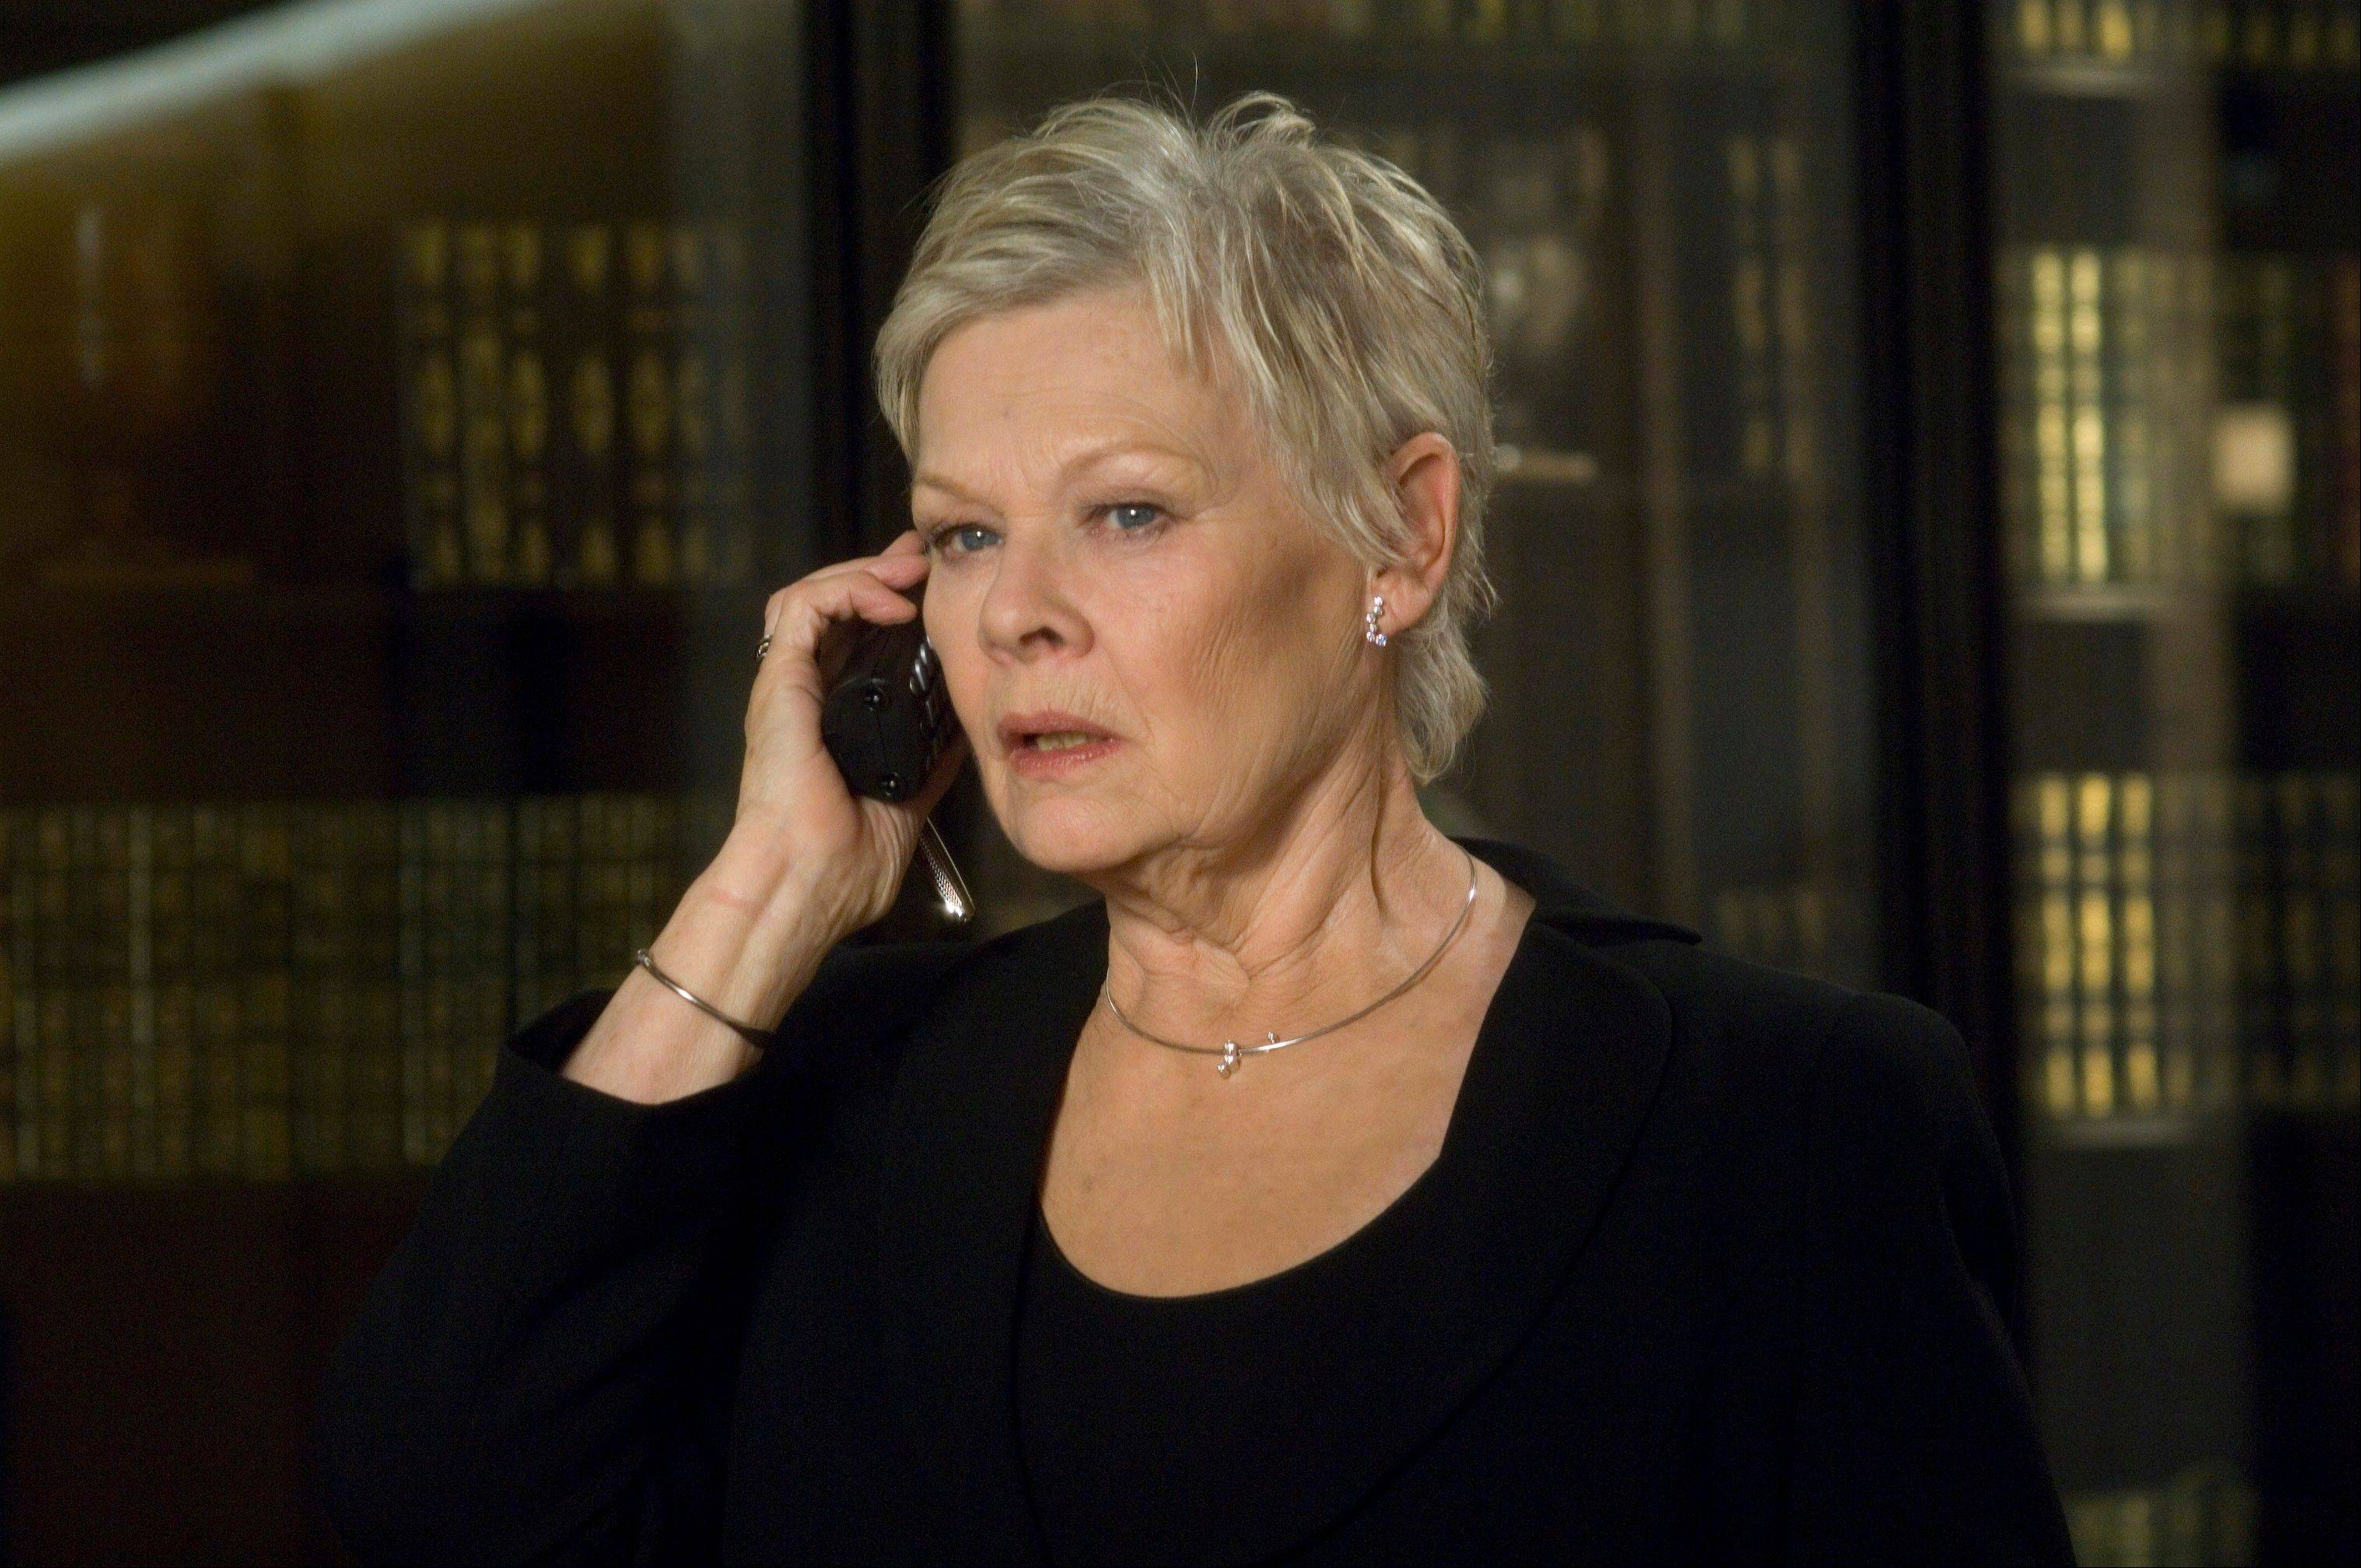 The greatest change in women's position in the Bond saga, is that the agent's boss, M, is a woman played by Judi Dench.